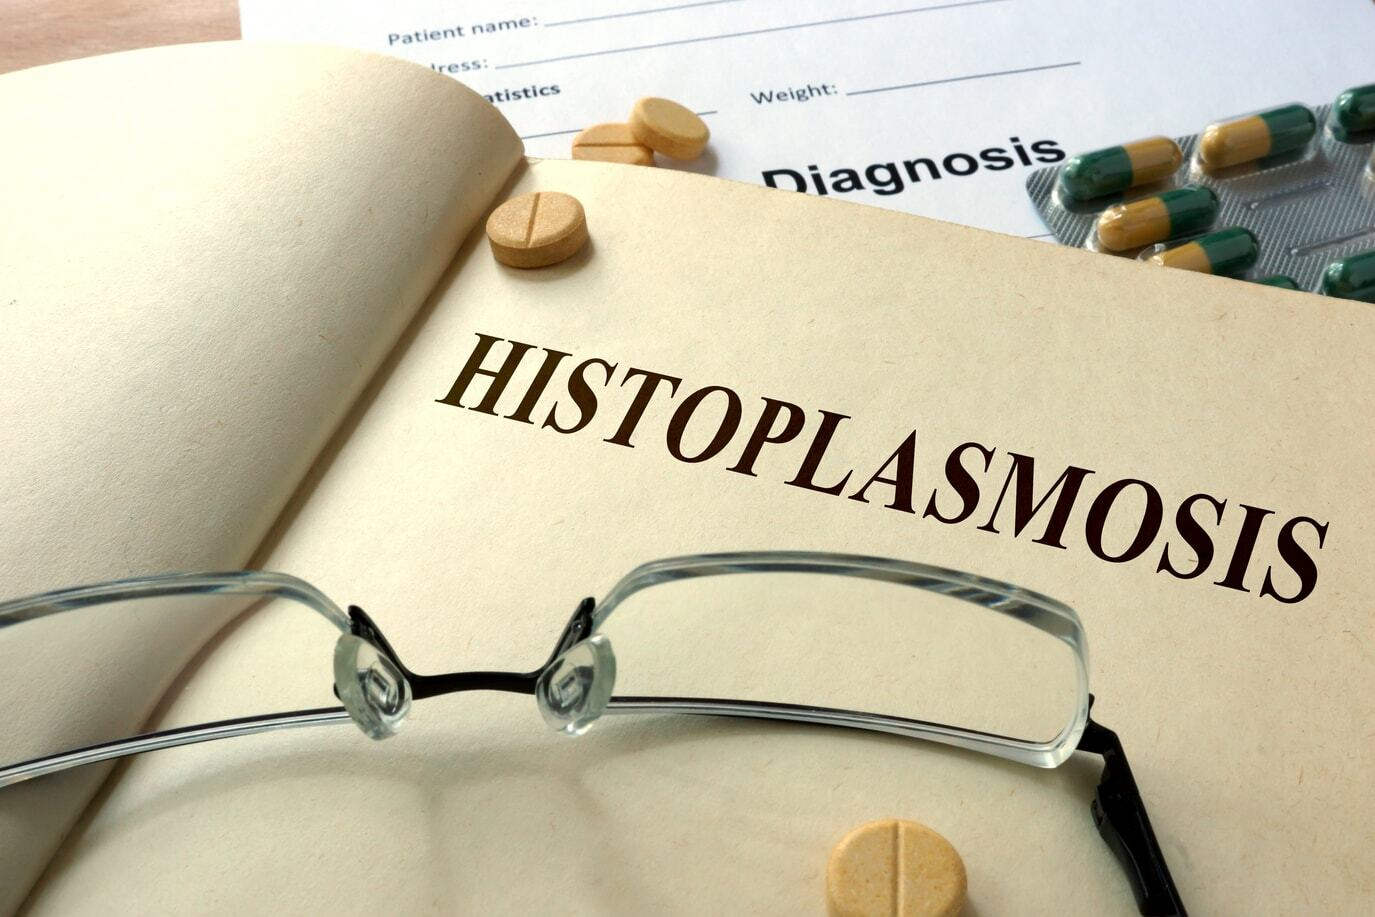 Histoplasmosis: Symptoms, Diagnosis And Treatment